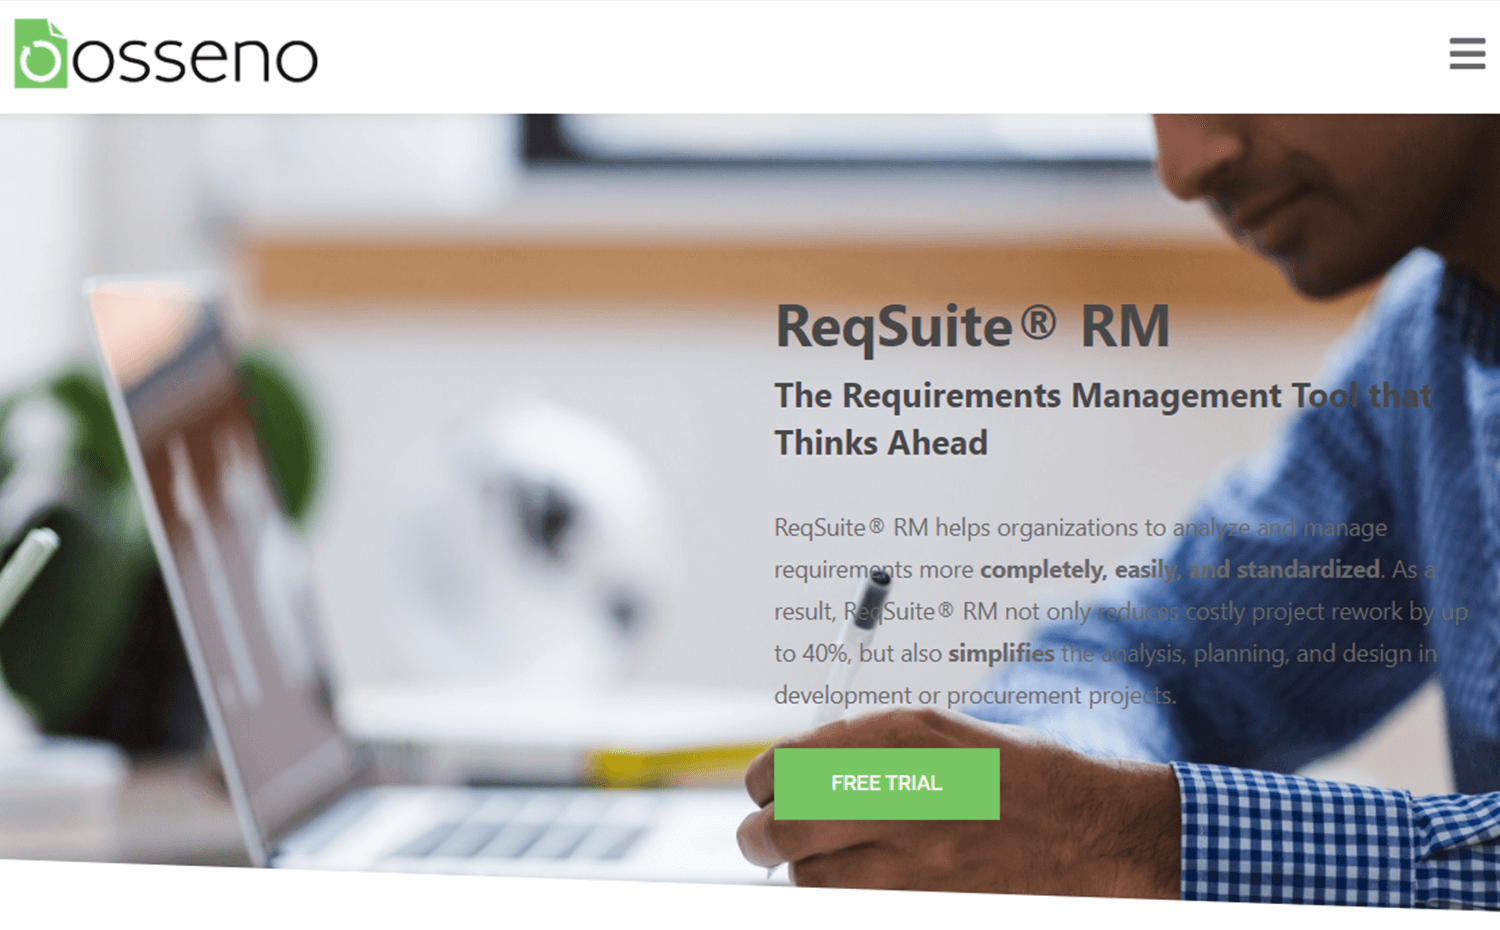 reqsuite as a tool for requirements management